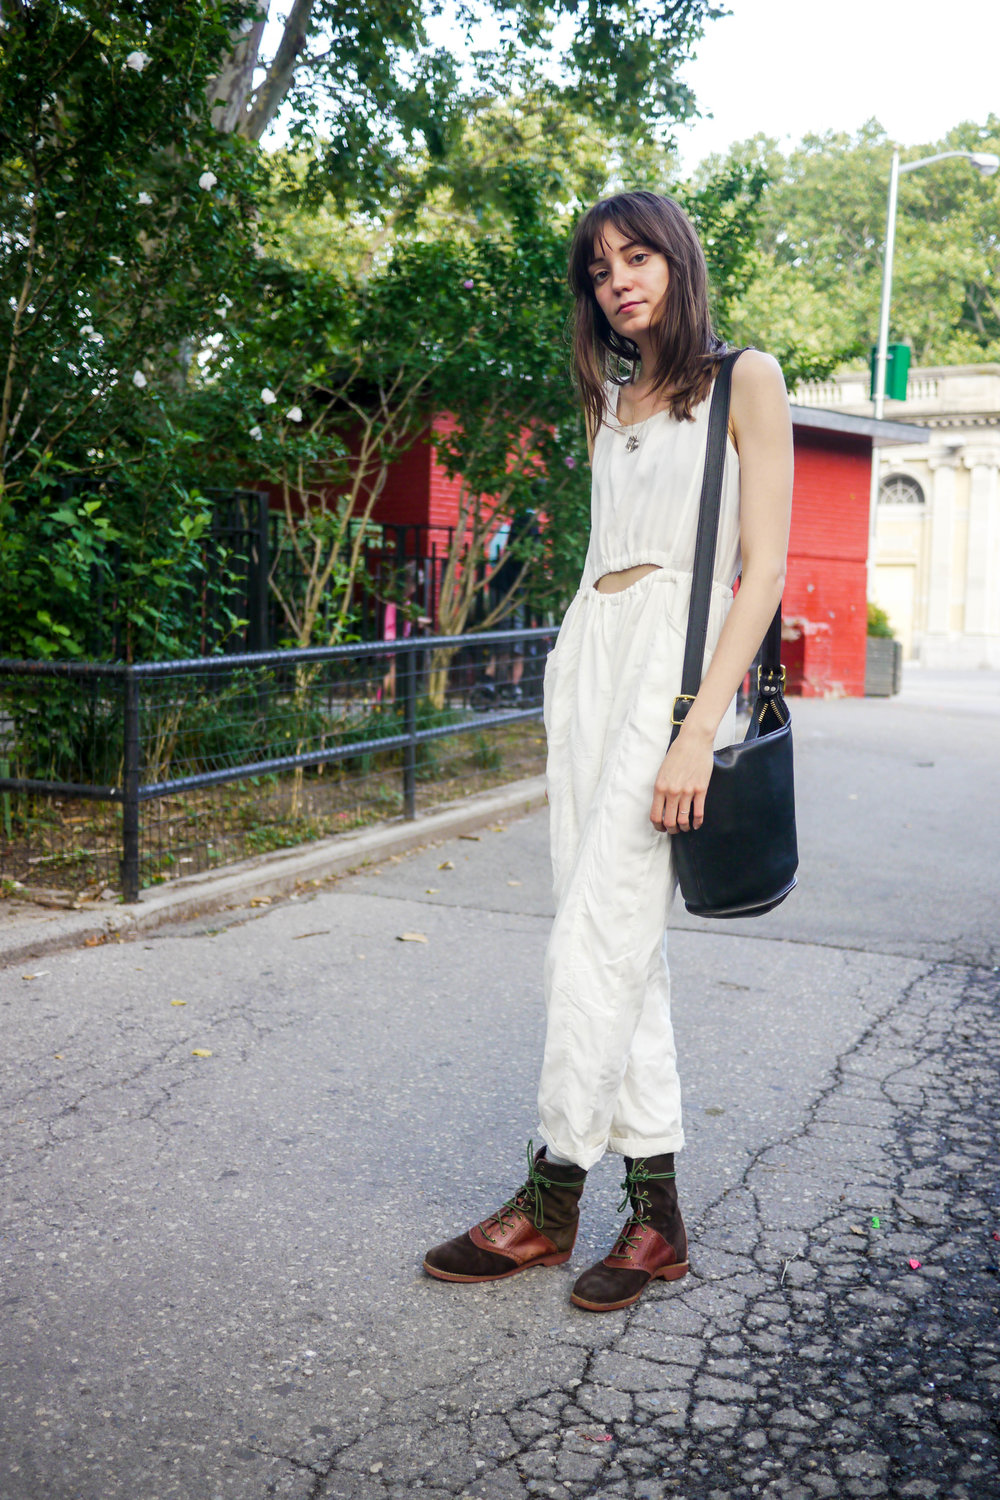 Jumpsuit, Samantha Pleet ; Boots, Bass ; Bag, Coach